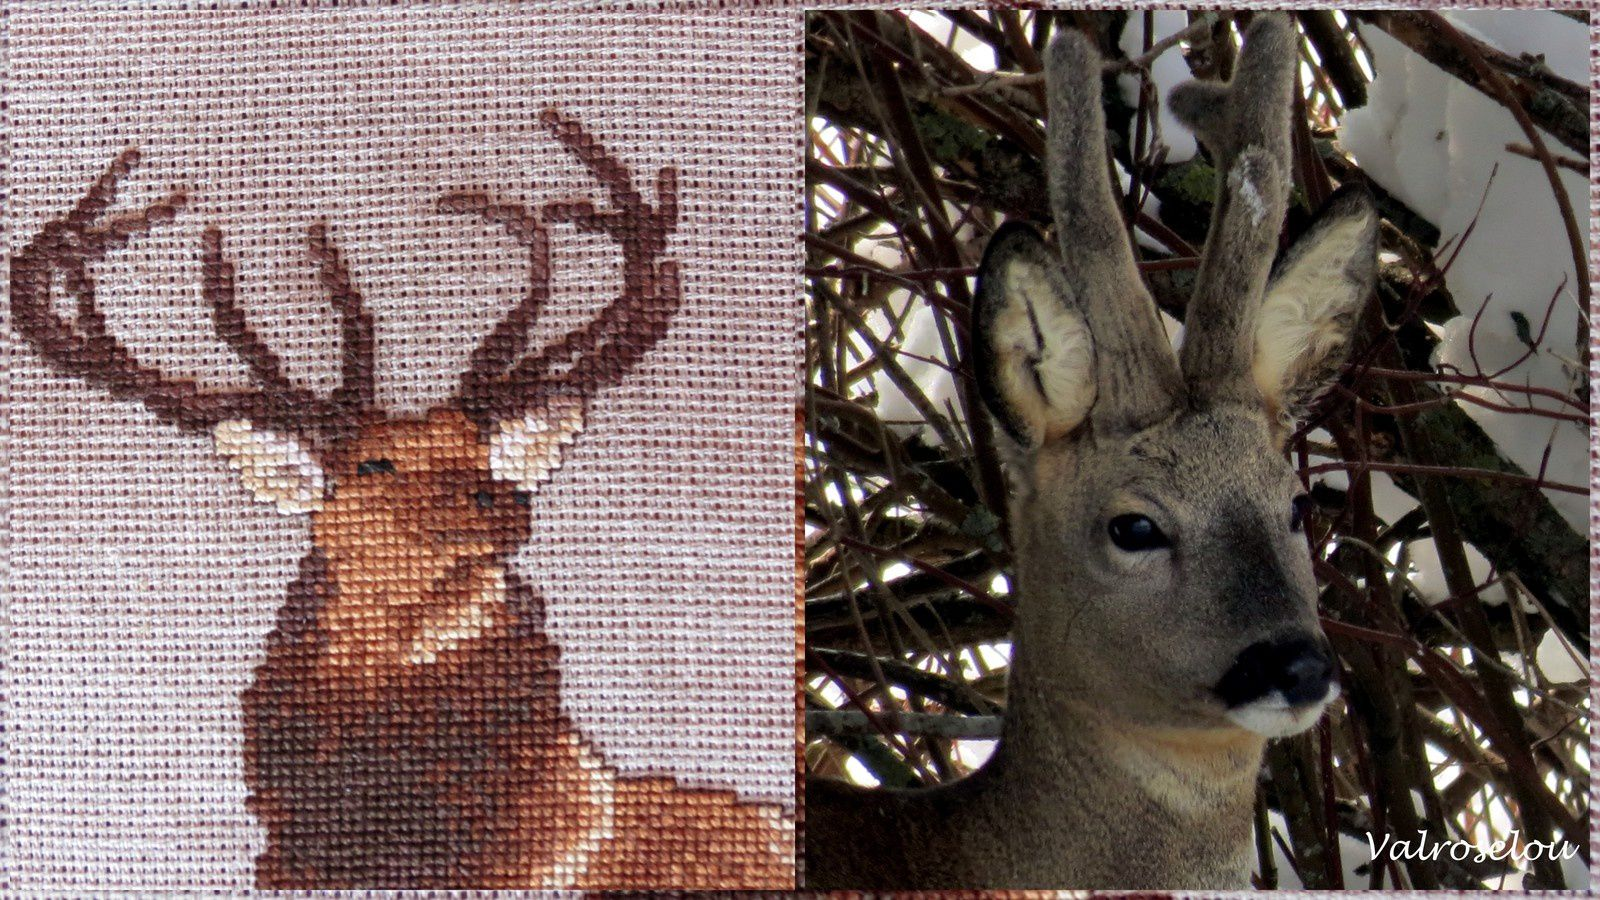 Cerf, cerf ouvre-moi ...